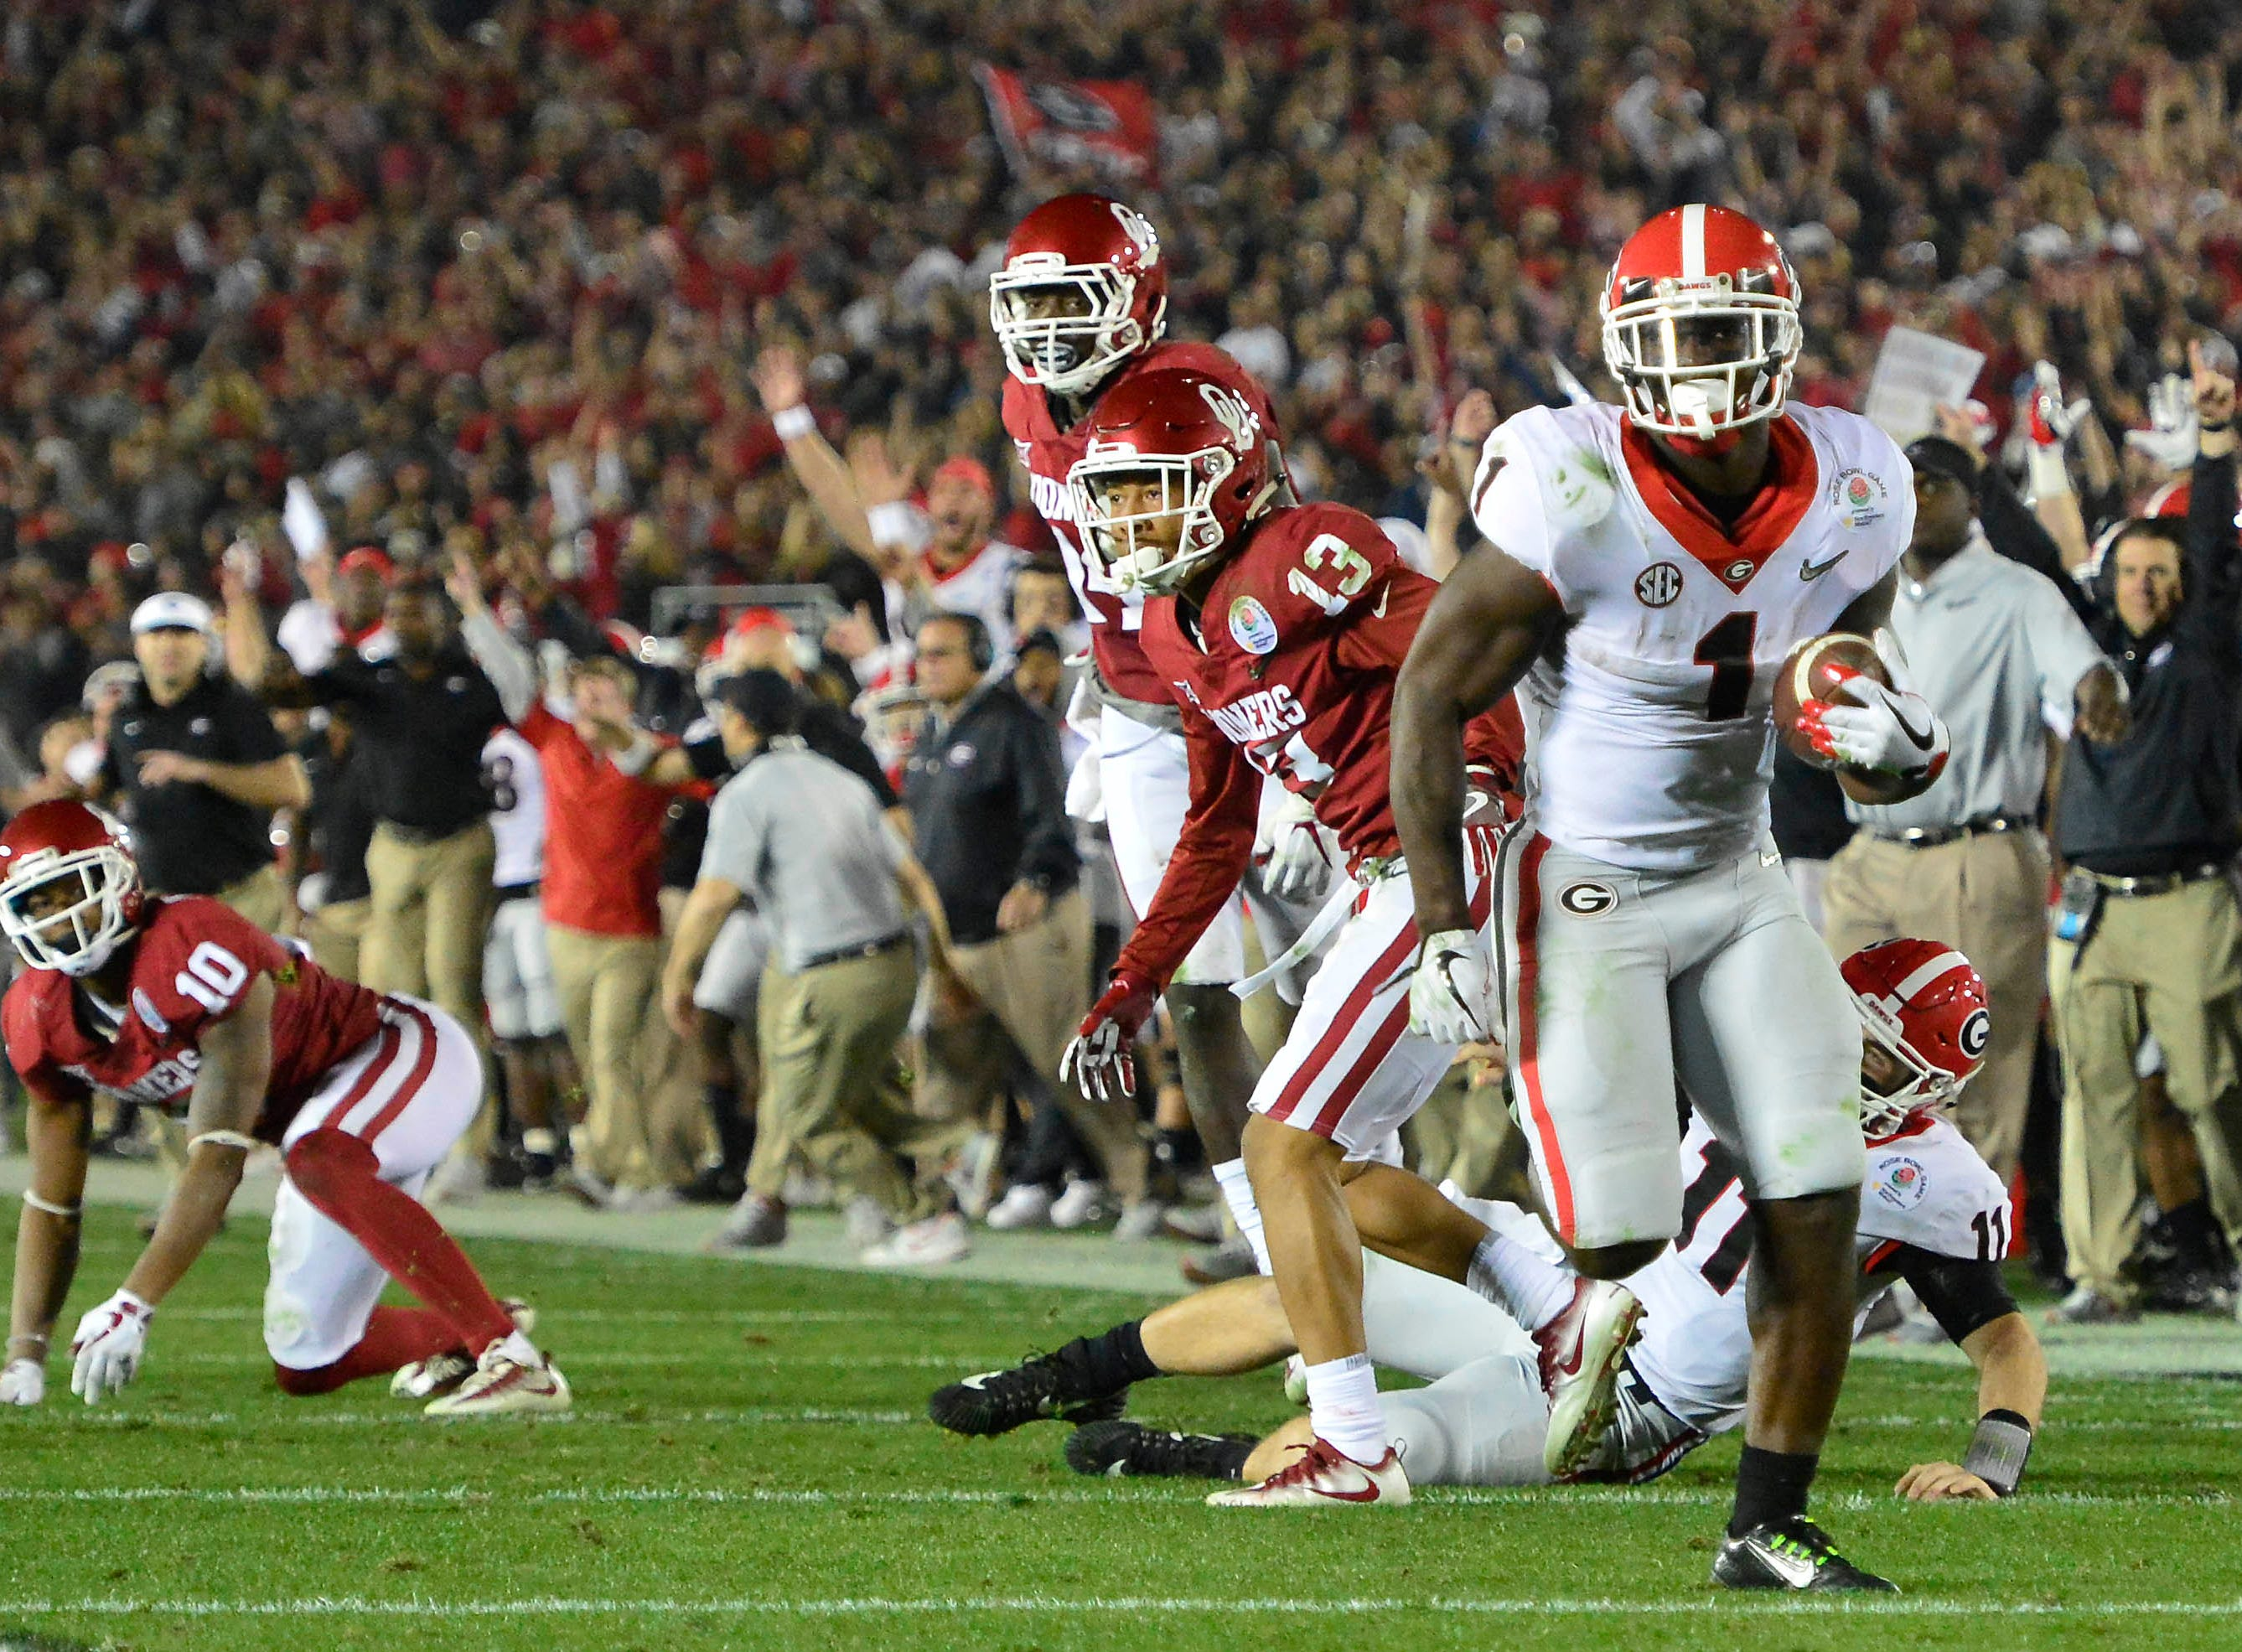 Jan. 1: Georgia Bulldogs running back Sony Michel (1) scores the winning touchdown in overtime against the Oklahoma Sooners in the Rose Bowl.